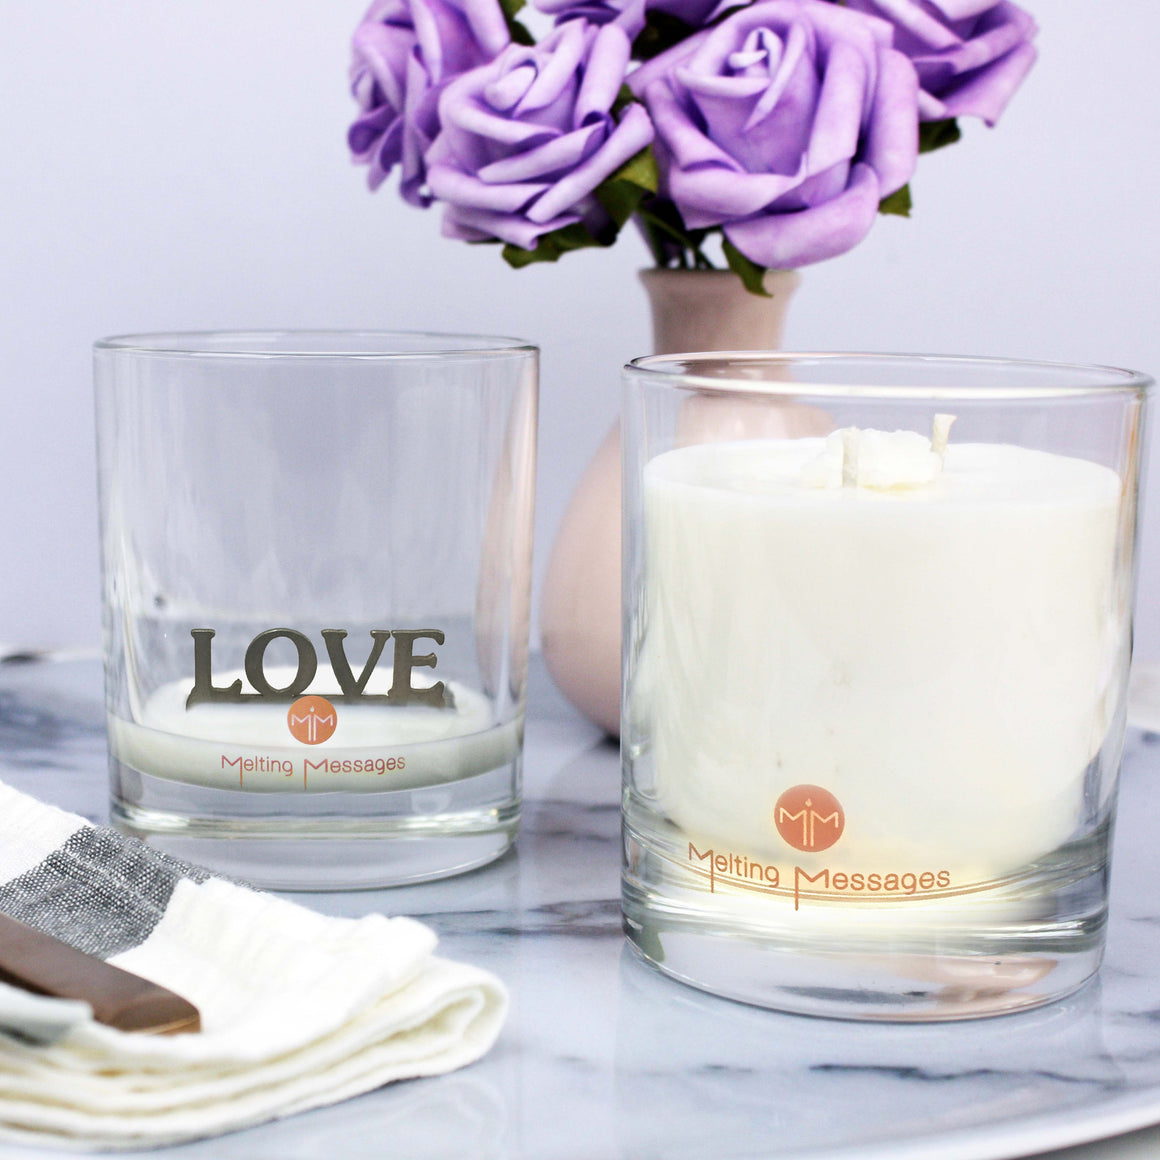 Melting Messages 'Love' Silver Candle - The Love Trees